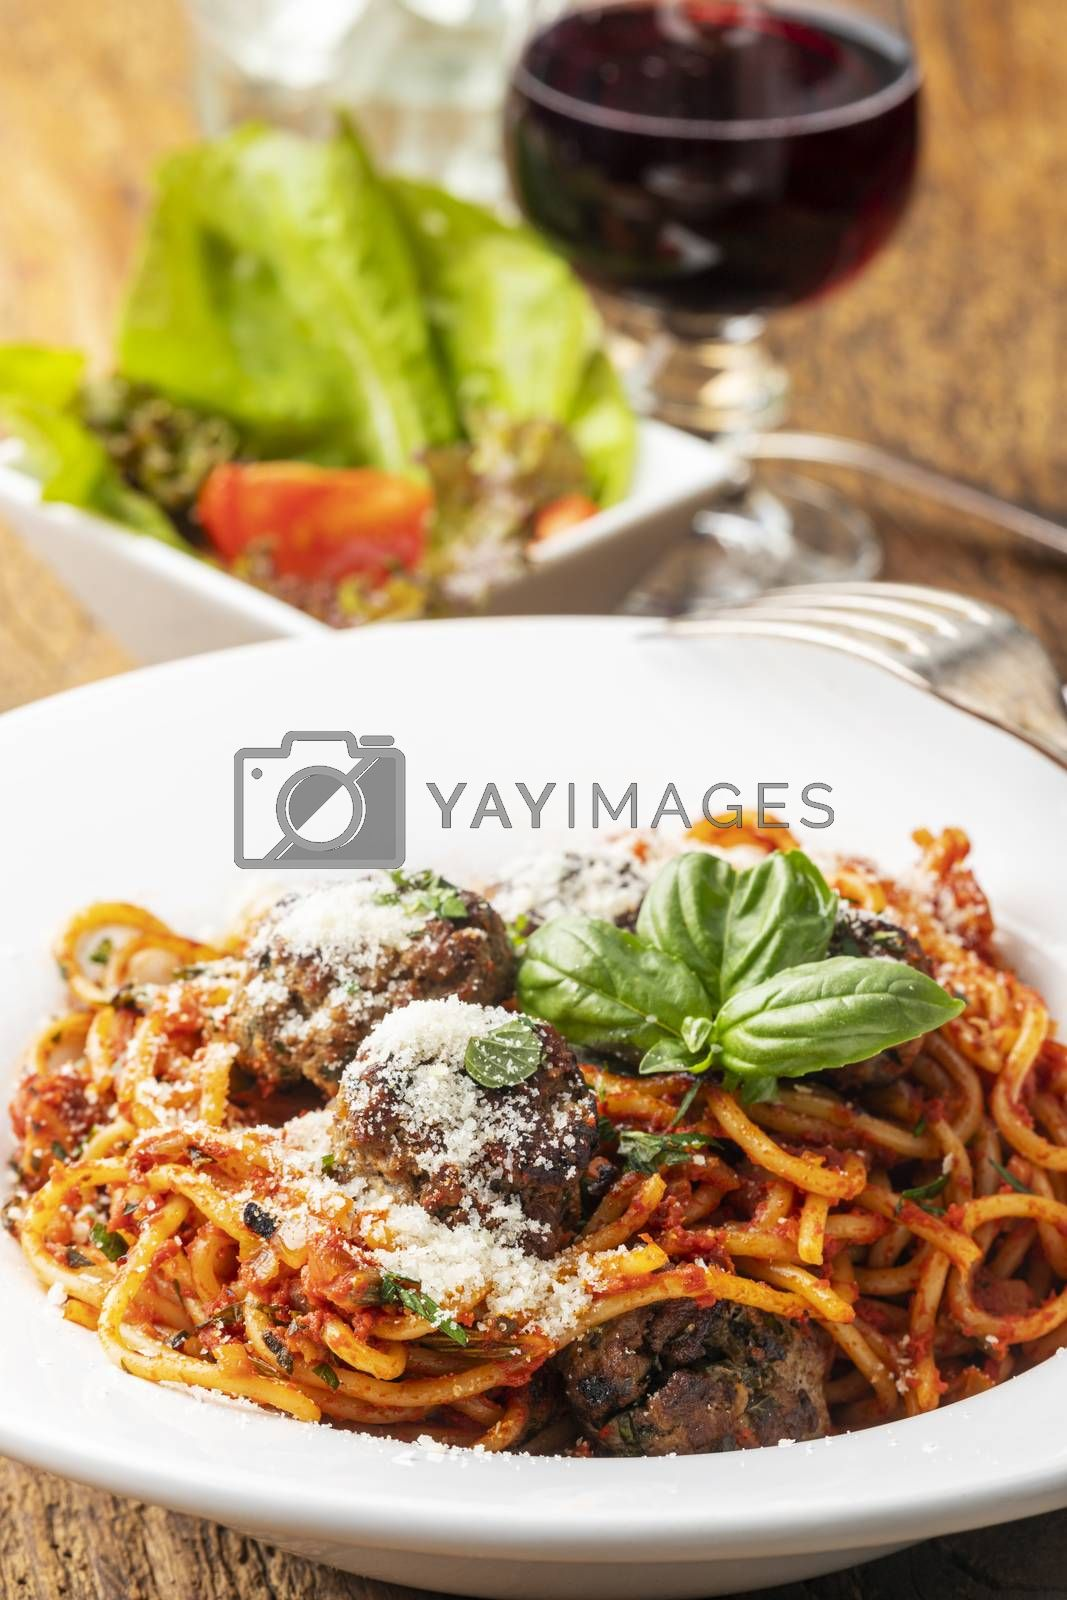 spaghetti with meat balls on dark wood